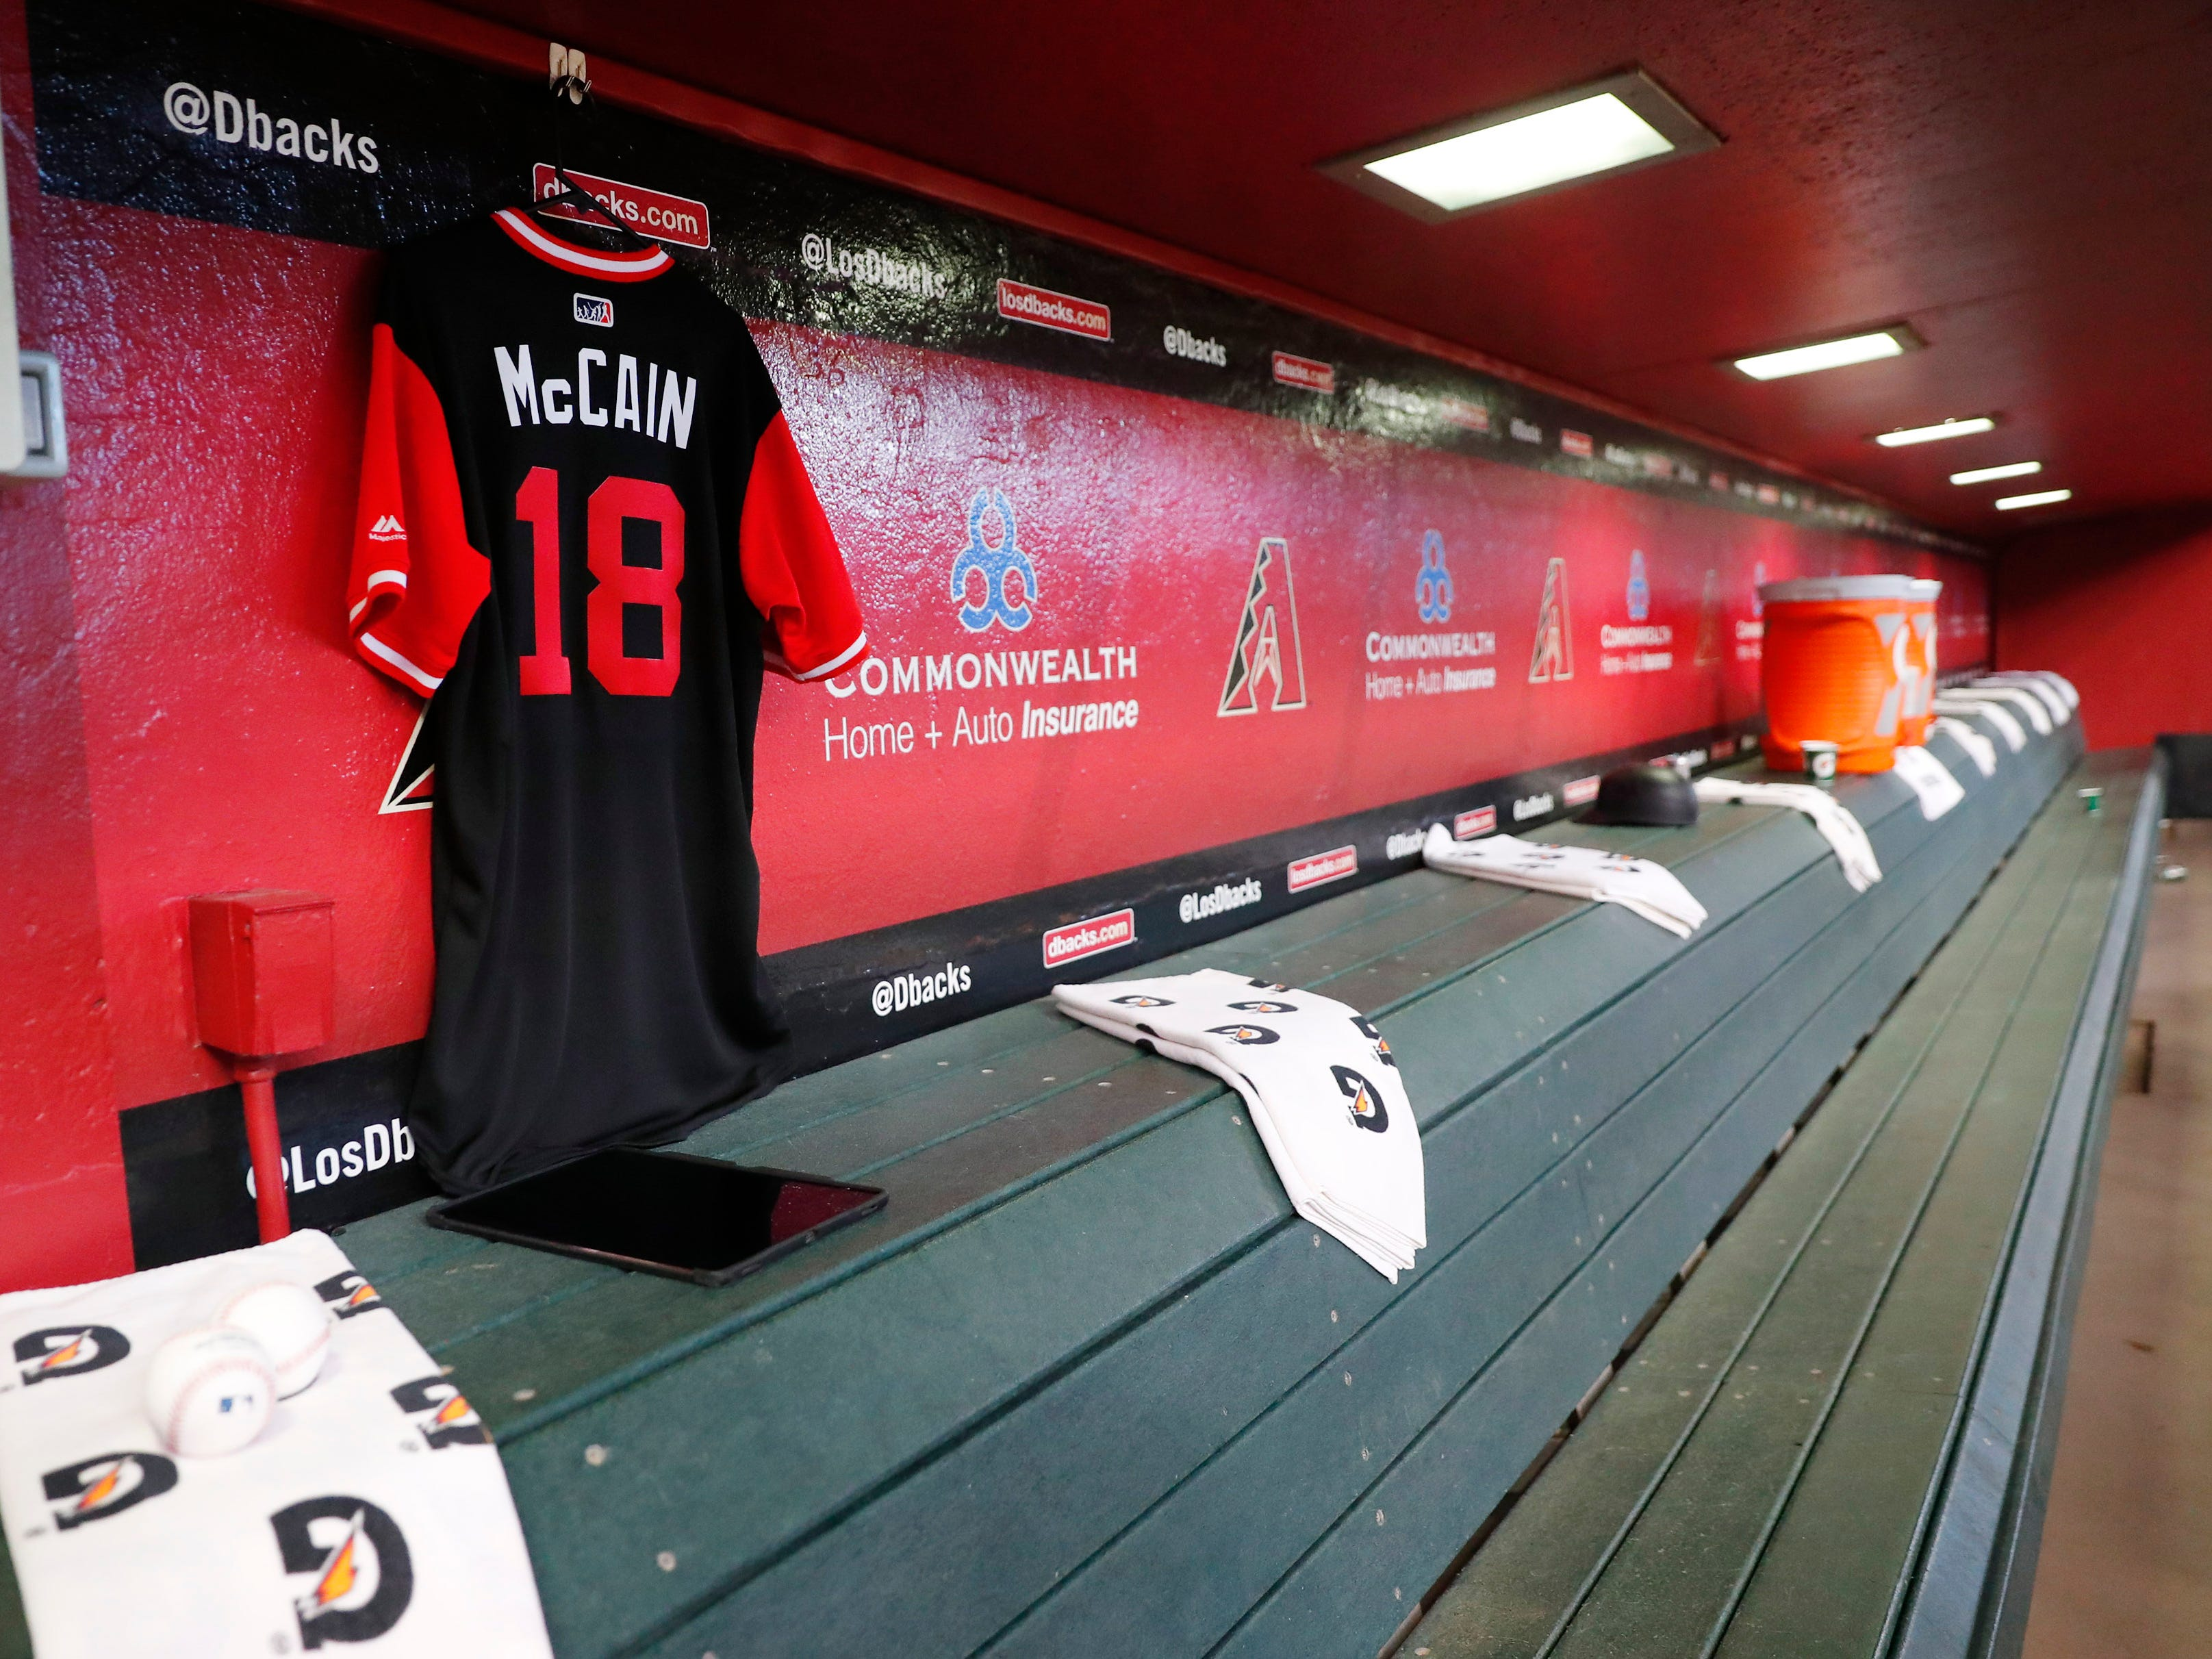 A jersey for Sen. John McCain hangs in the dugout before the Arizona Diamondbacks play against the Seattle Mariners at Chase Field in Phoenix, Ariz. August 26. 2018. The six-term Arizona senator died Saturday at age 81.